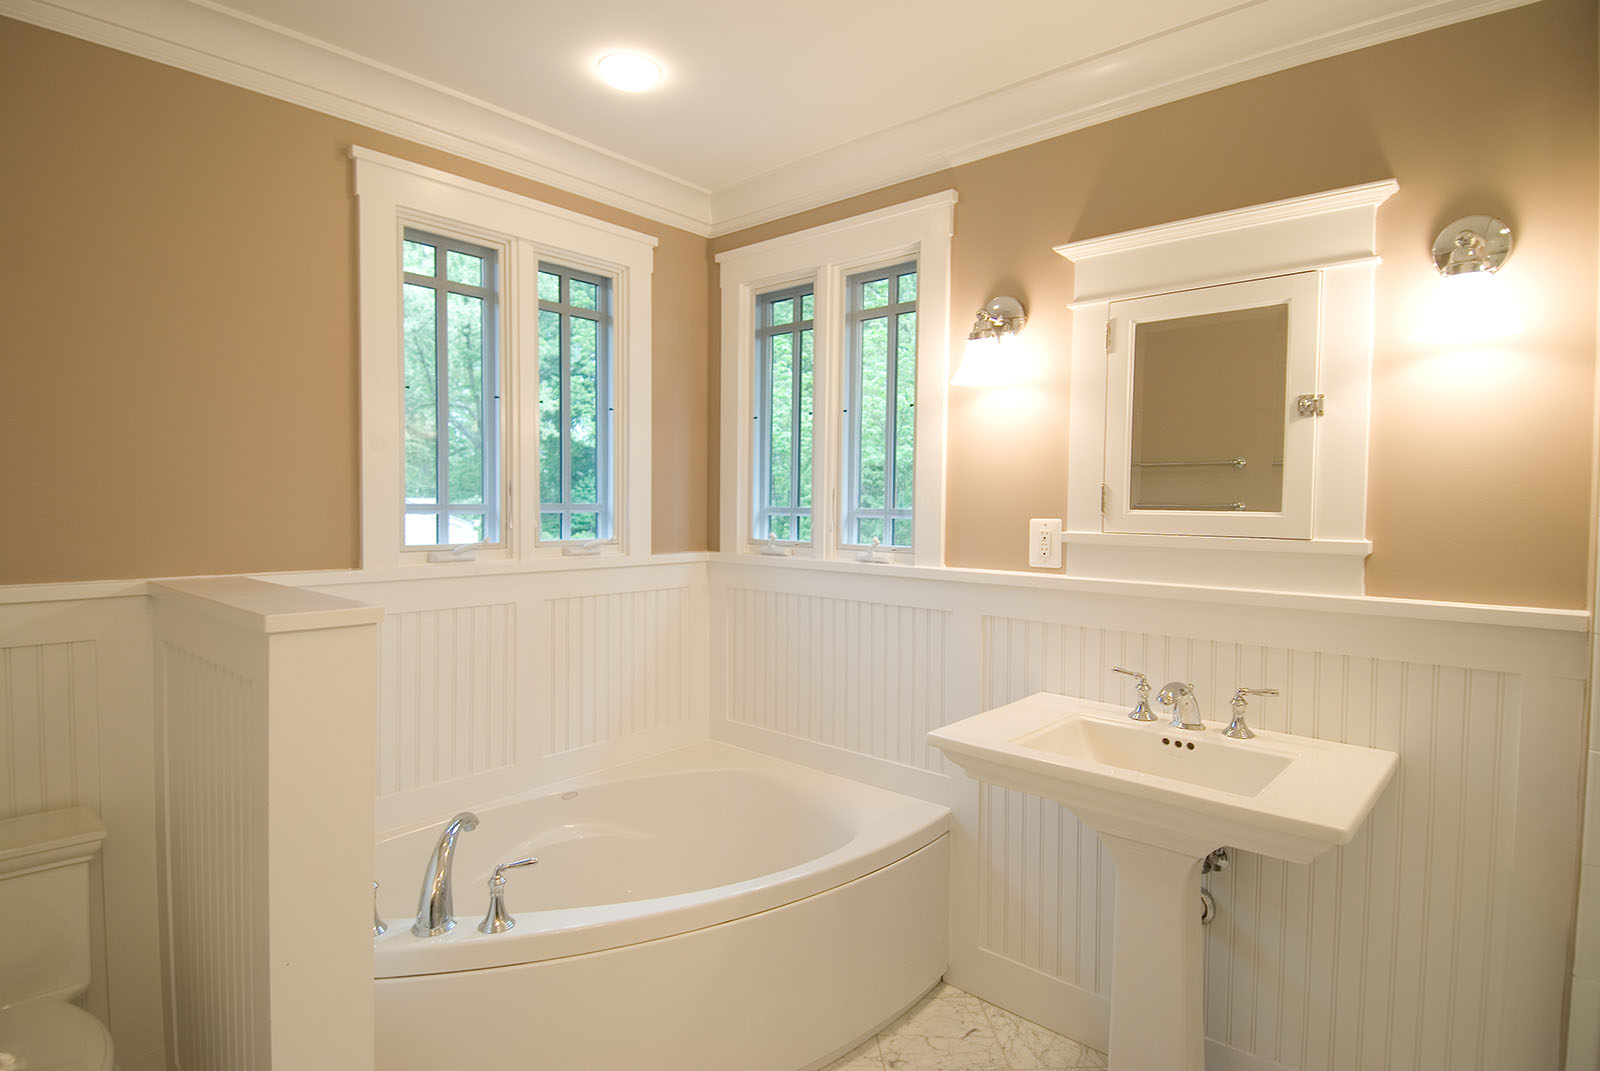 Old Bathroom Remodel Extraordinary Bathroom Remodeling  Old Dominion Building Group Design Ideas